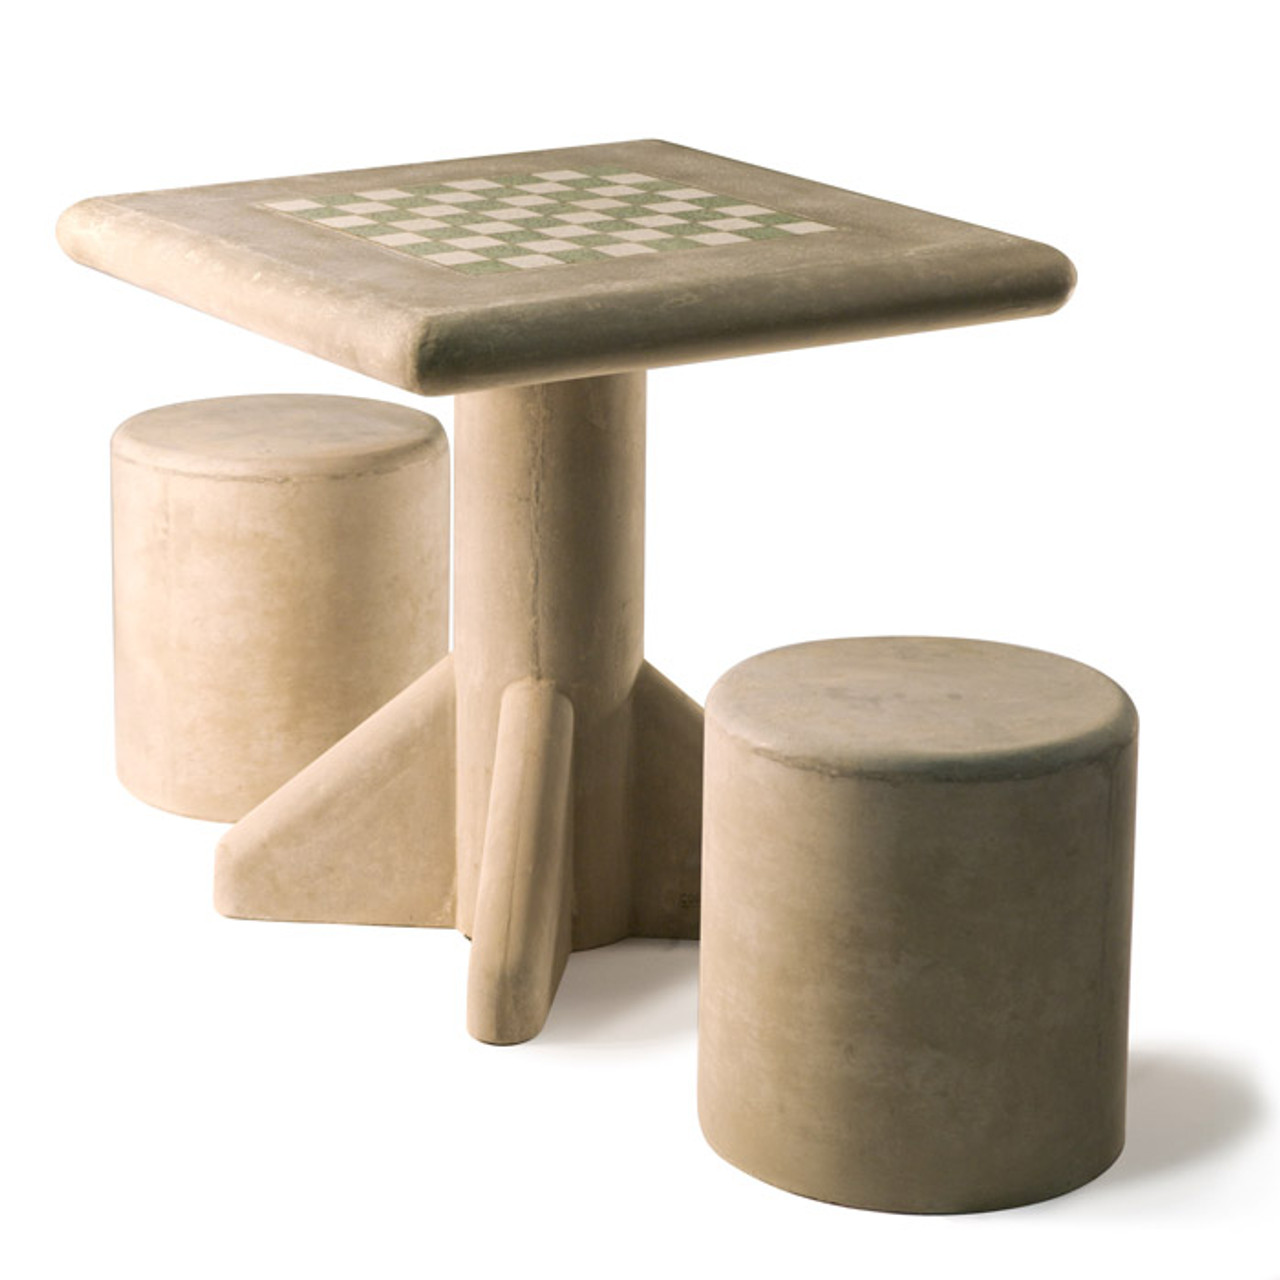 Concrete Freestanding Chess Table and Stool Set  sc 1 st  Kenneth Lynch and Sons & Concrete Freestanding Chess Table and Stool Set - Kenneth Lynch and Sons